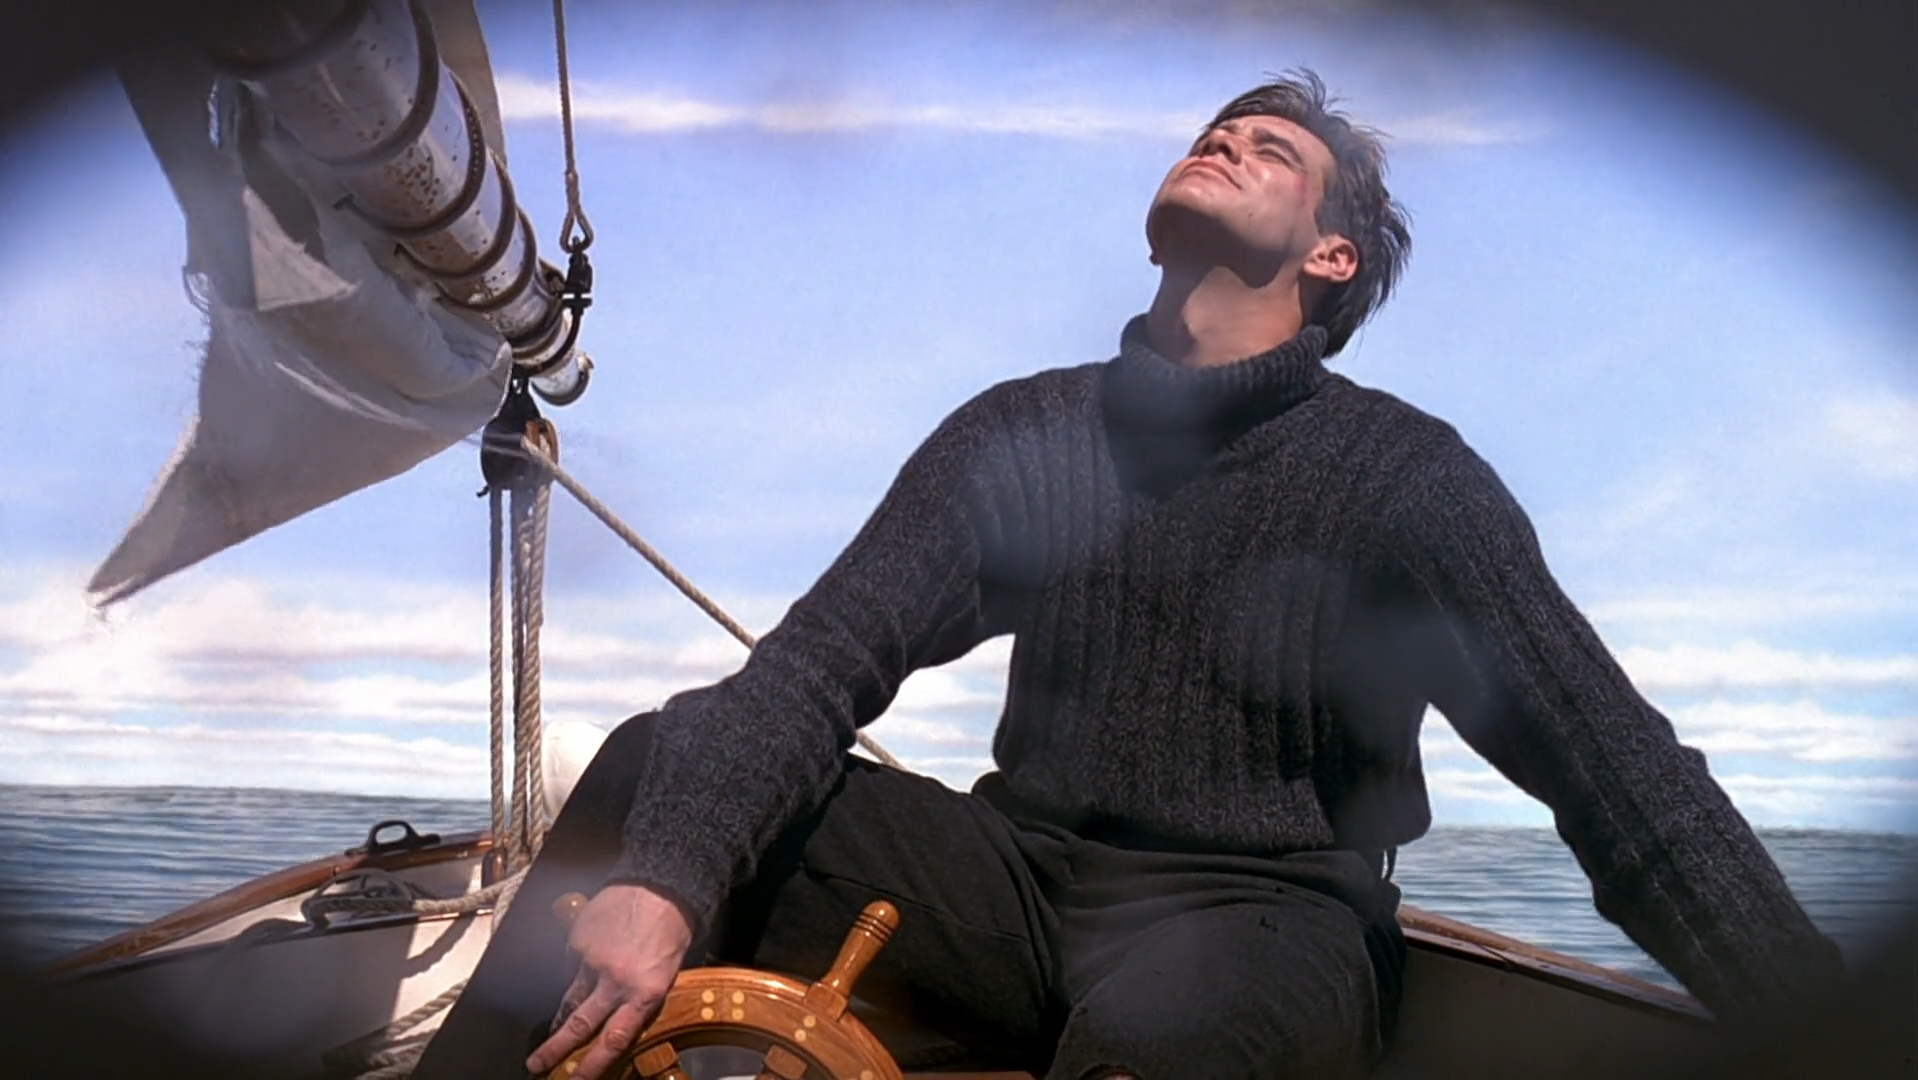 essays on truman show The truman show is a movie about a man who is held captive inside a world that revolves around him truman burbank, the main character has been raised on a huge tv soundstage filled with hidden cameras and actors who pretend to be his friends and family.